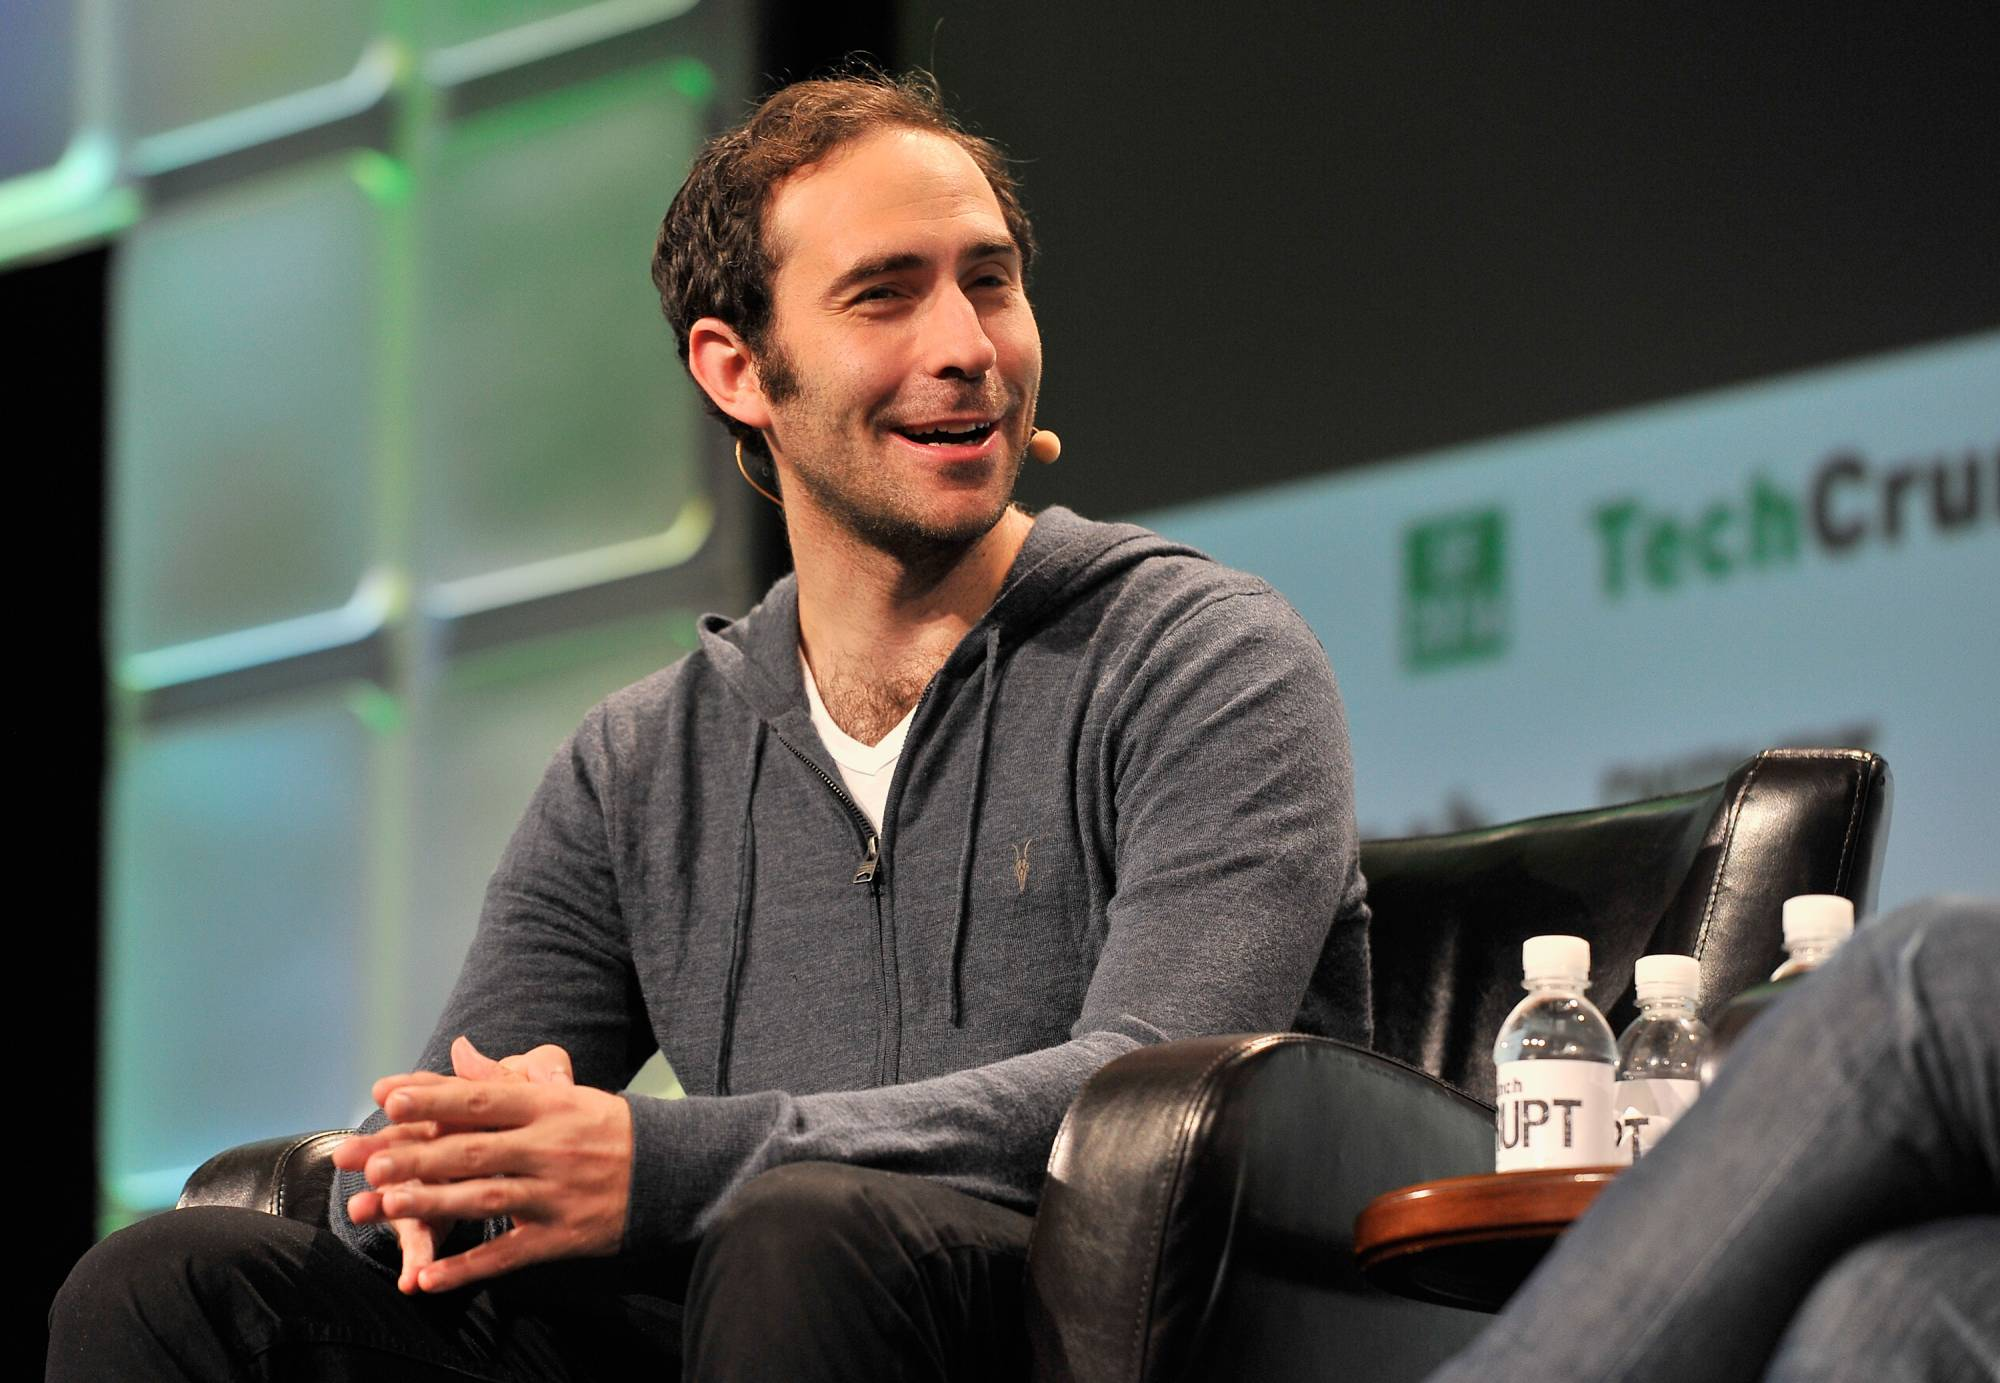 Twitch CEO Emmett Shear talks live streaming, sarcasm, and Amazon Web Services.